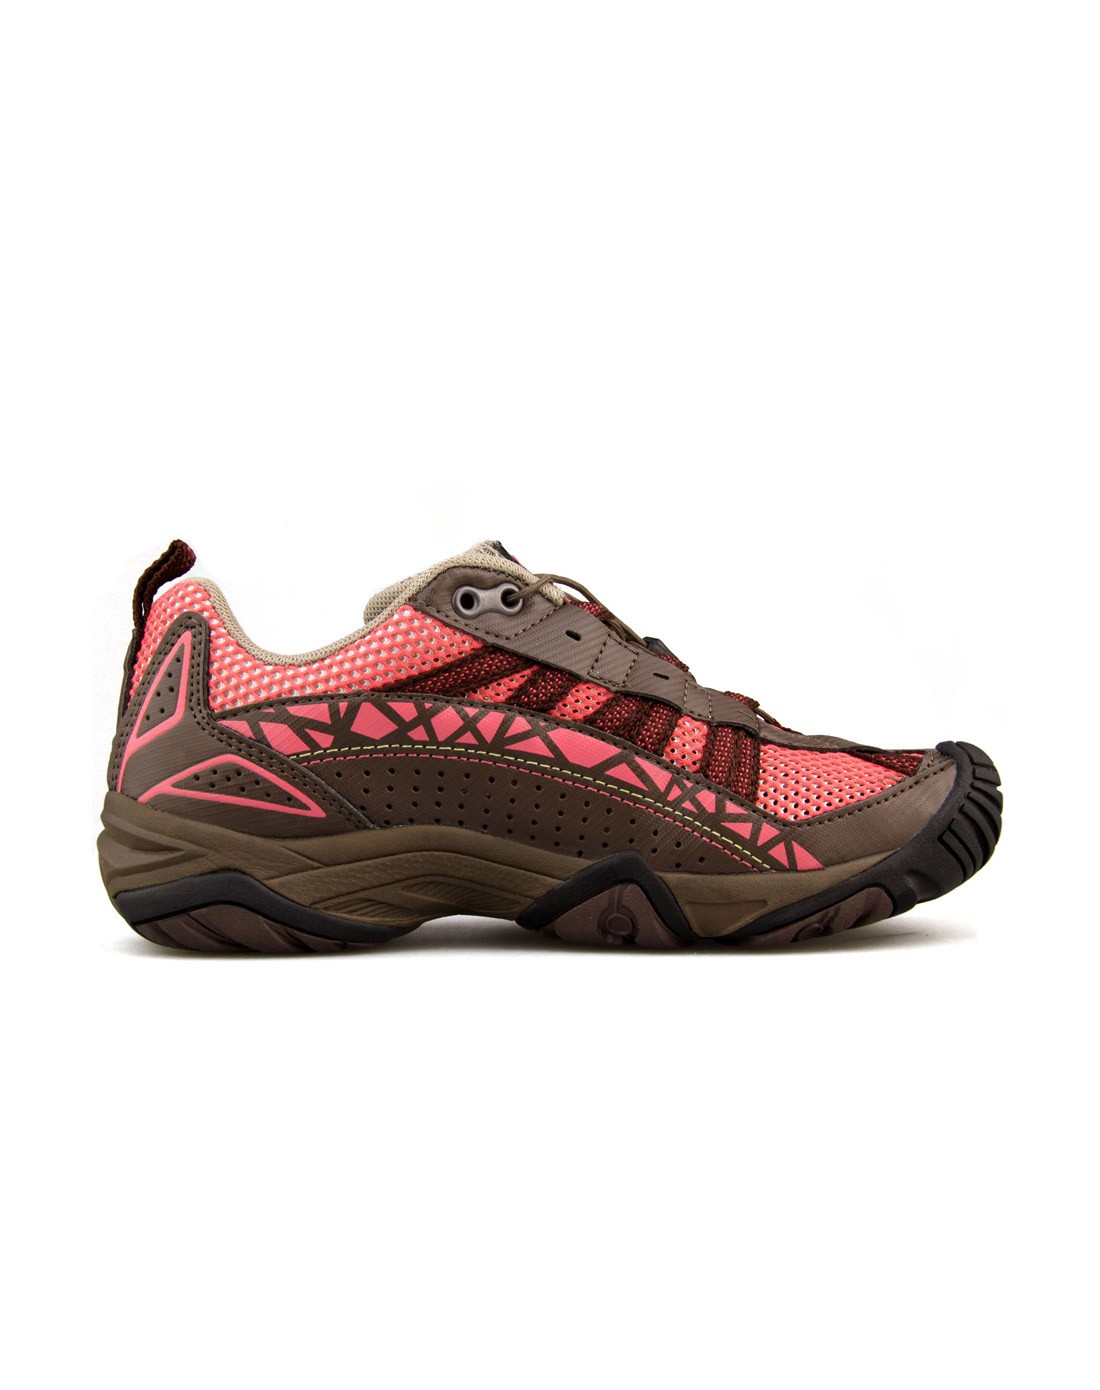 Academy Amphibious Water Shoes Manufacturers, Academy Amphibious Water Shoes Factory, Supply Academy Amphibious Water Shoes